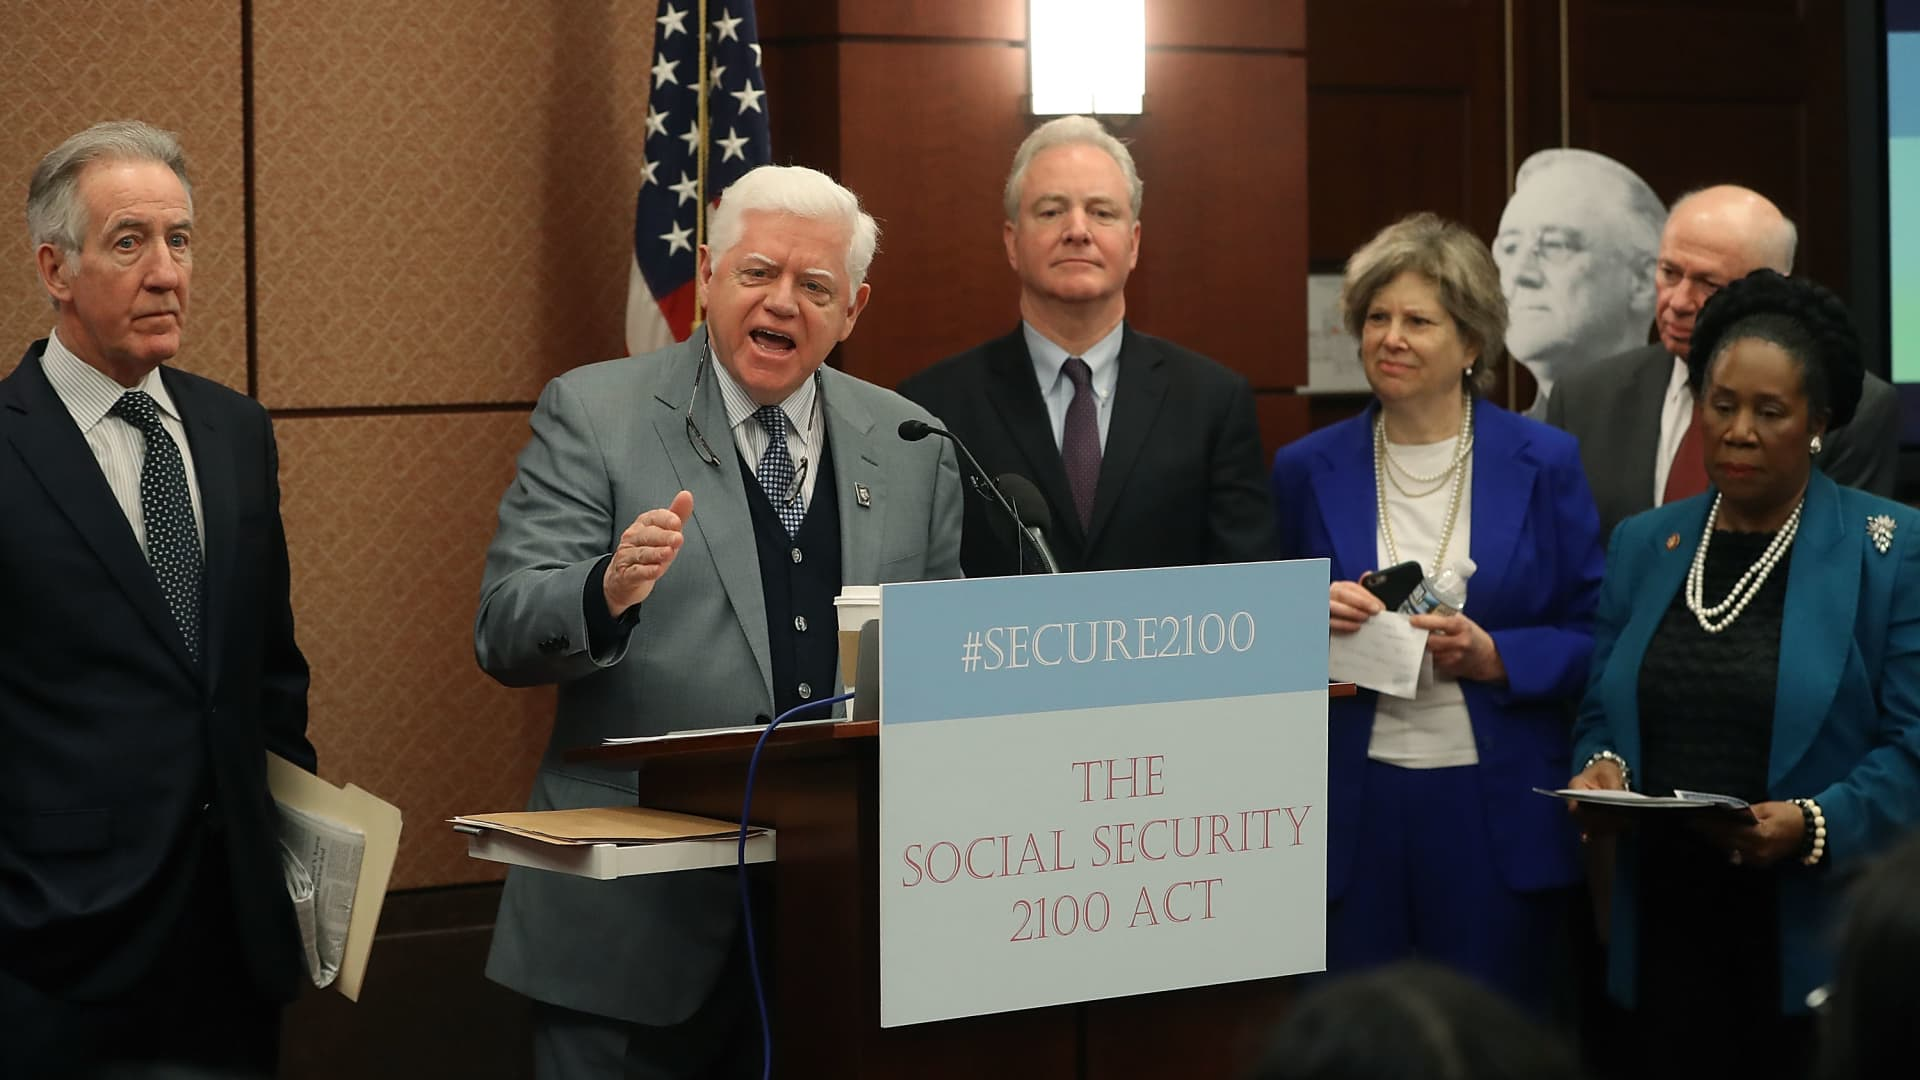 Rep. John Larson, D-Conn., speaks during an event to introduce legislation called the Social Security 2100 Act. which would increase increase benefits and strengthen the fund, on Capitol Hill on Jan. 30, 2019.